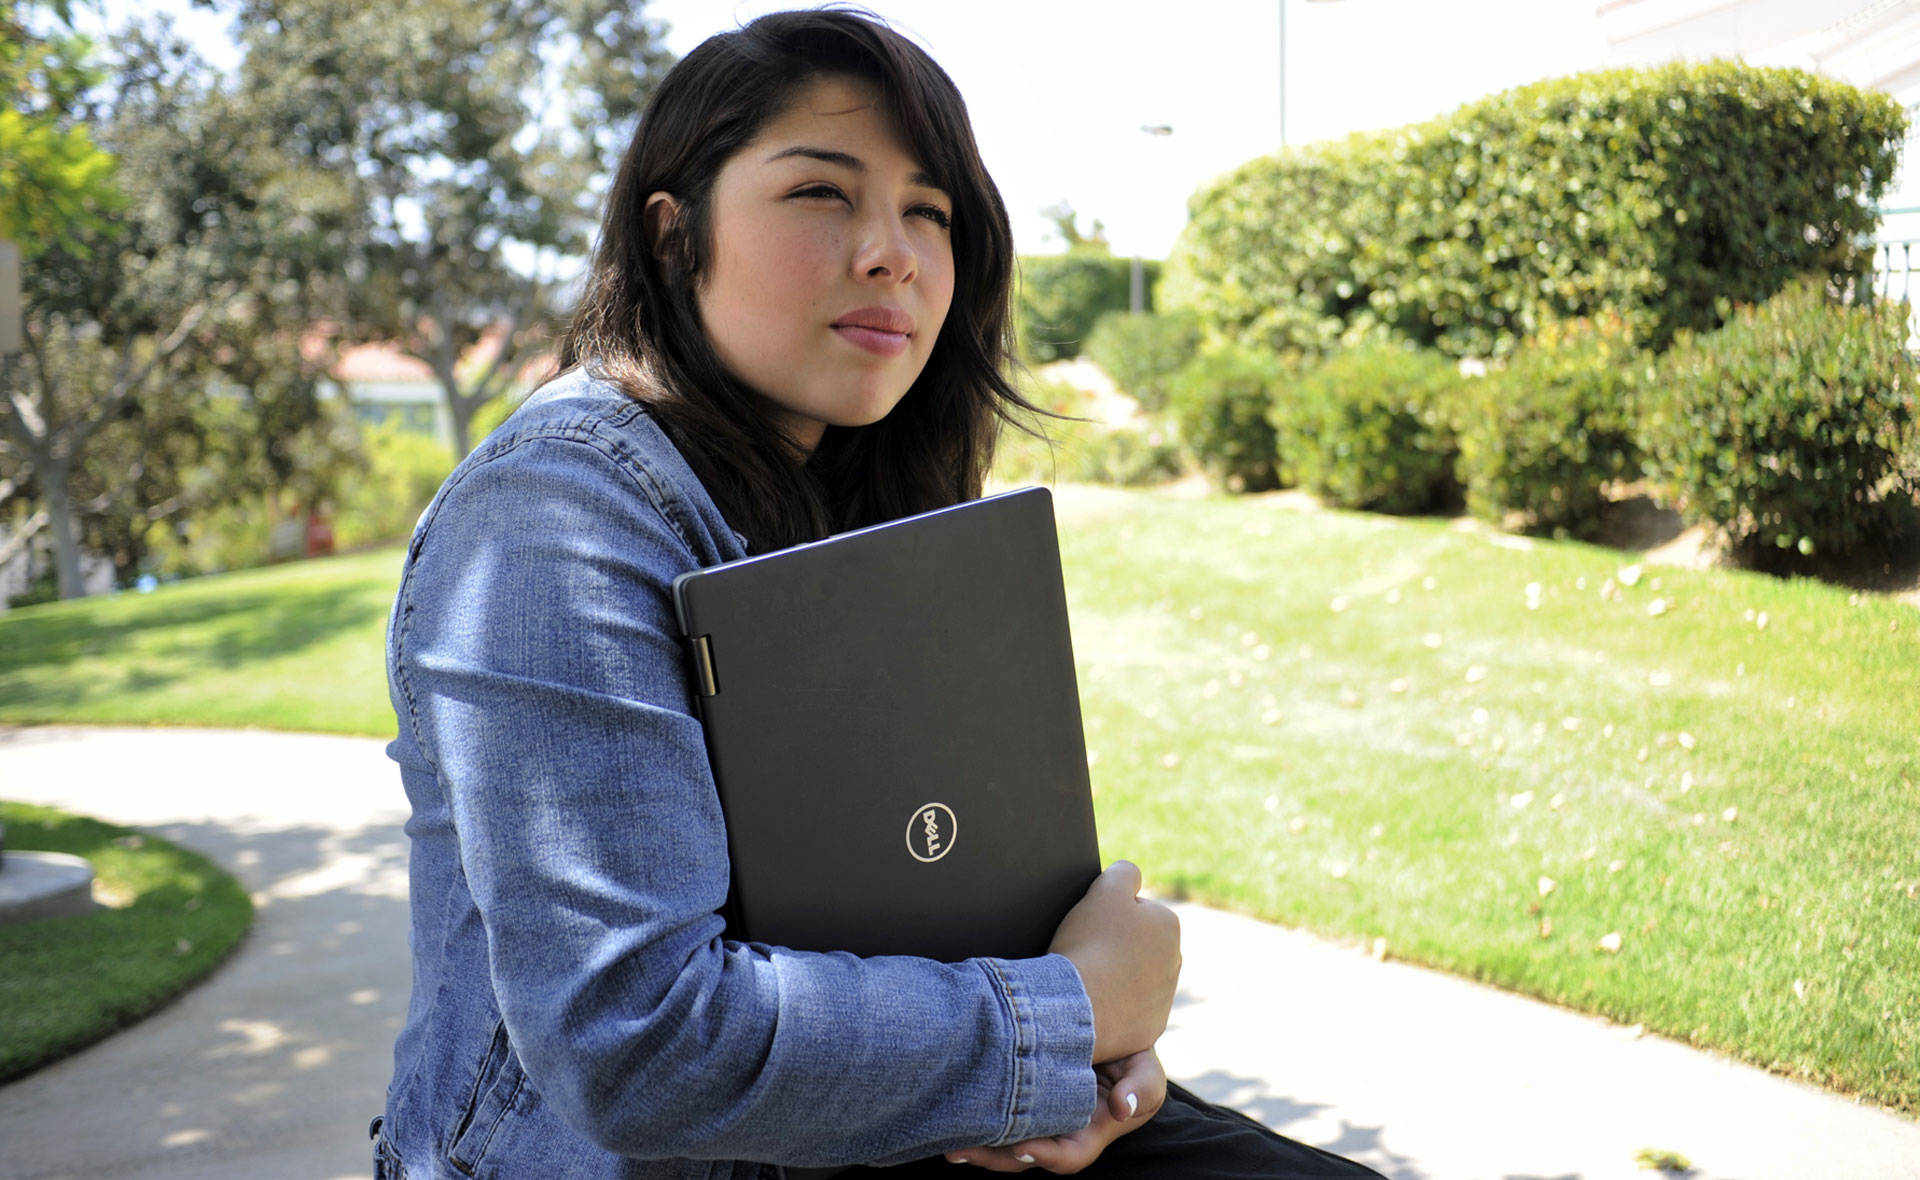 Dennisse Aldana, a student at Glendale Community College, received a refurbished laptop from iFoster. Blair Wells/KQED